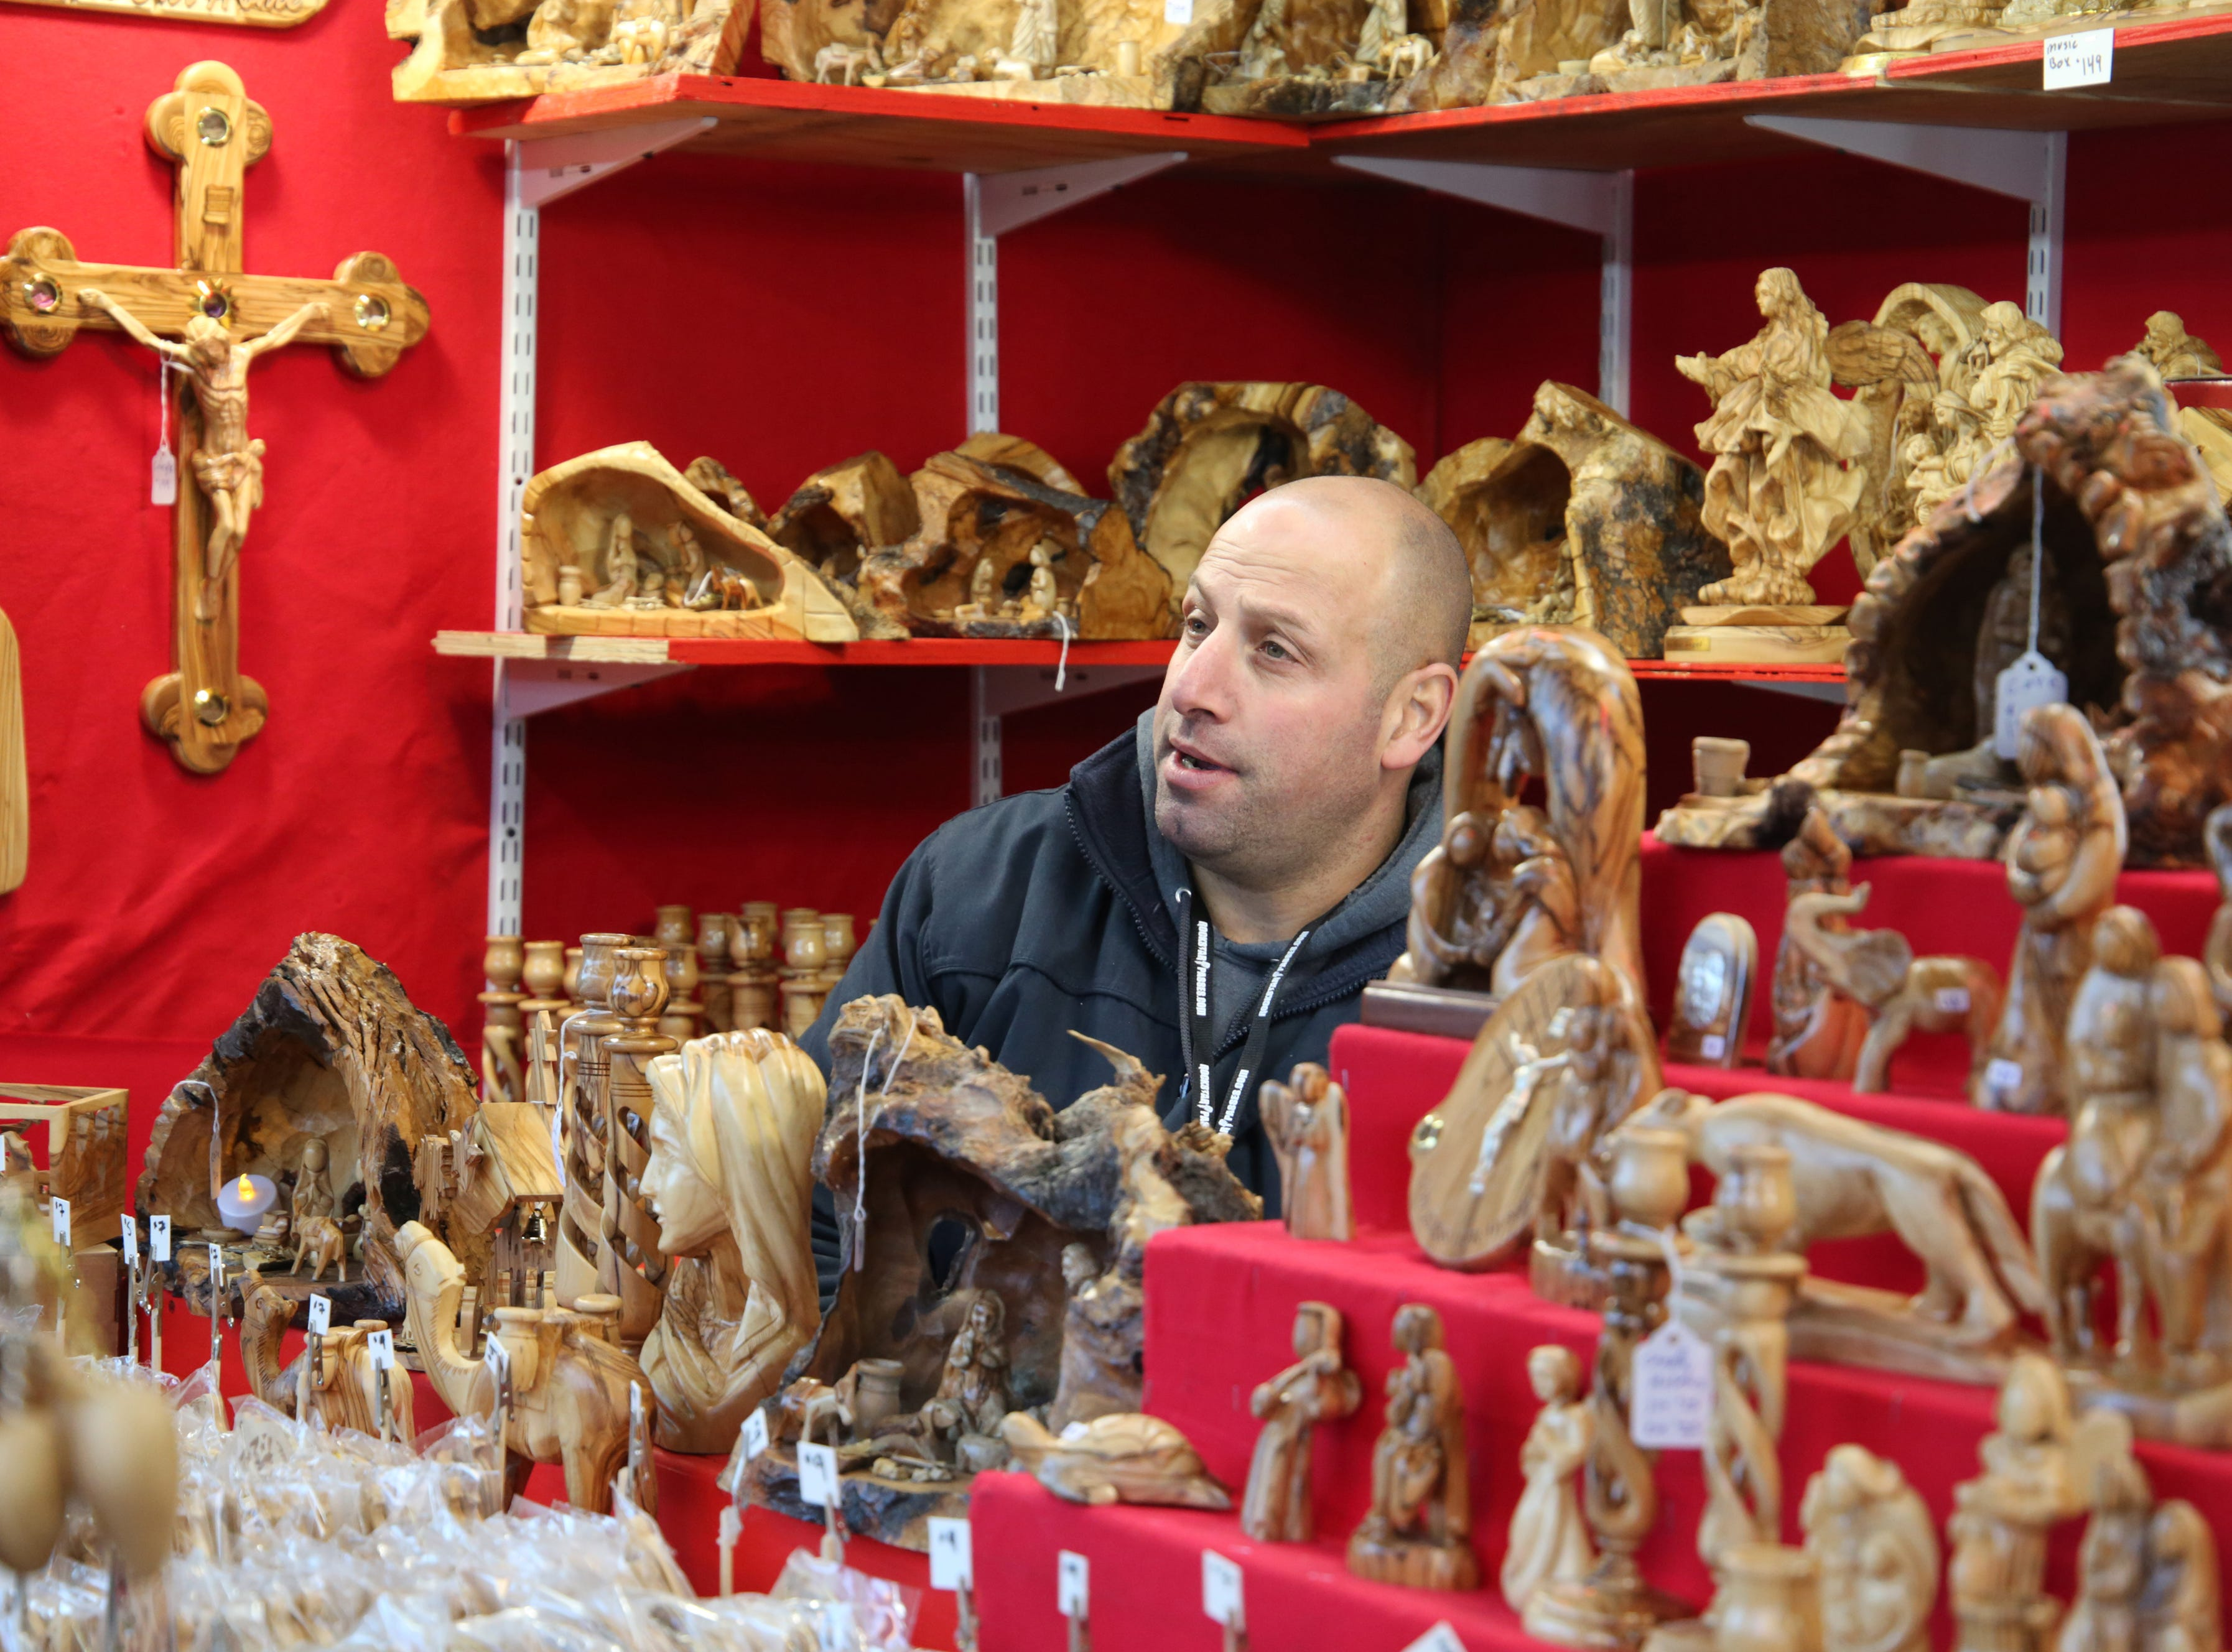 Elias Hosh, with Bethlehem Nativity Products, talks to a customer in the booth that sells carved wooden religious nativities and displays.